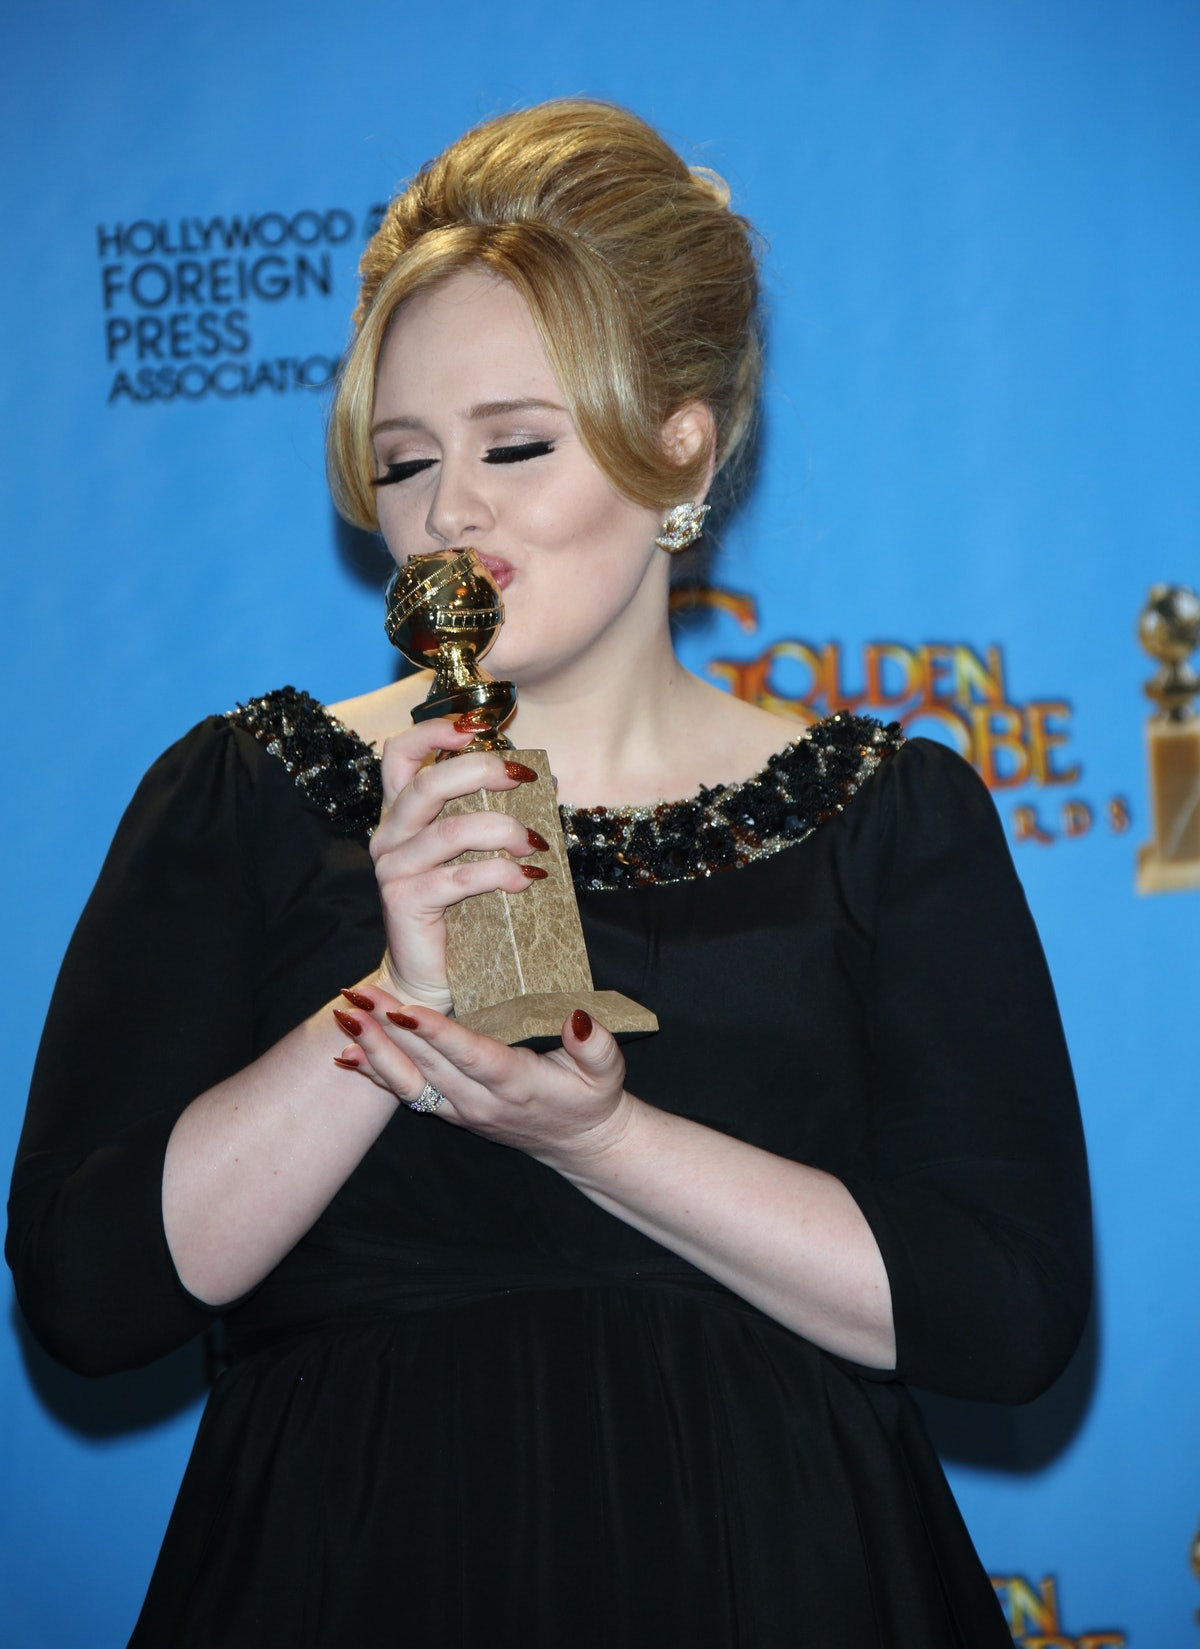 Adele poses with an award from the Hollywood Foreign Press Association.